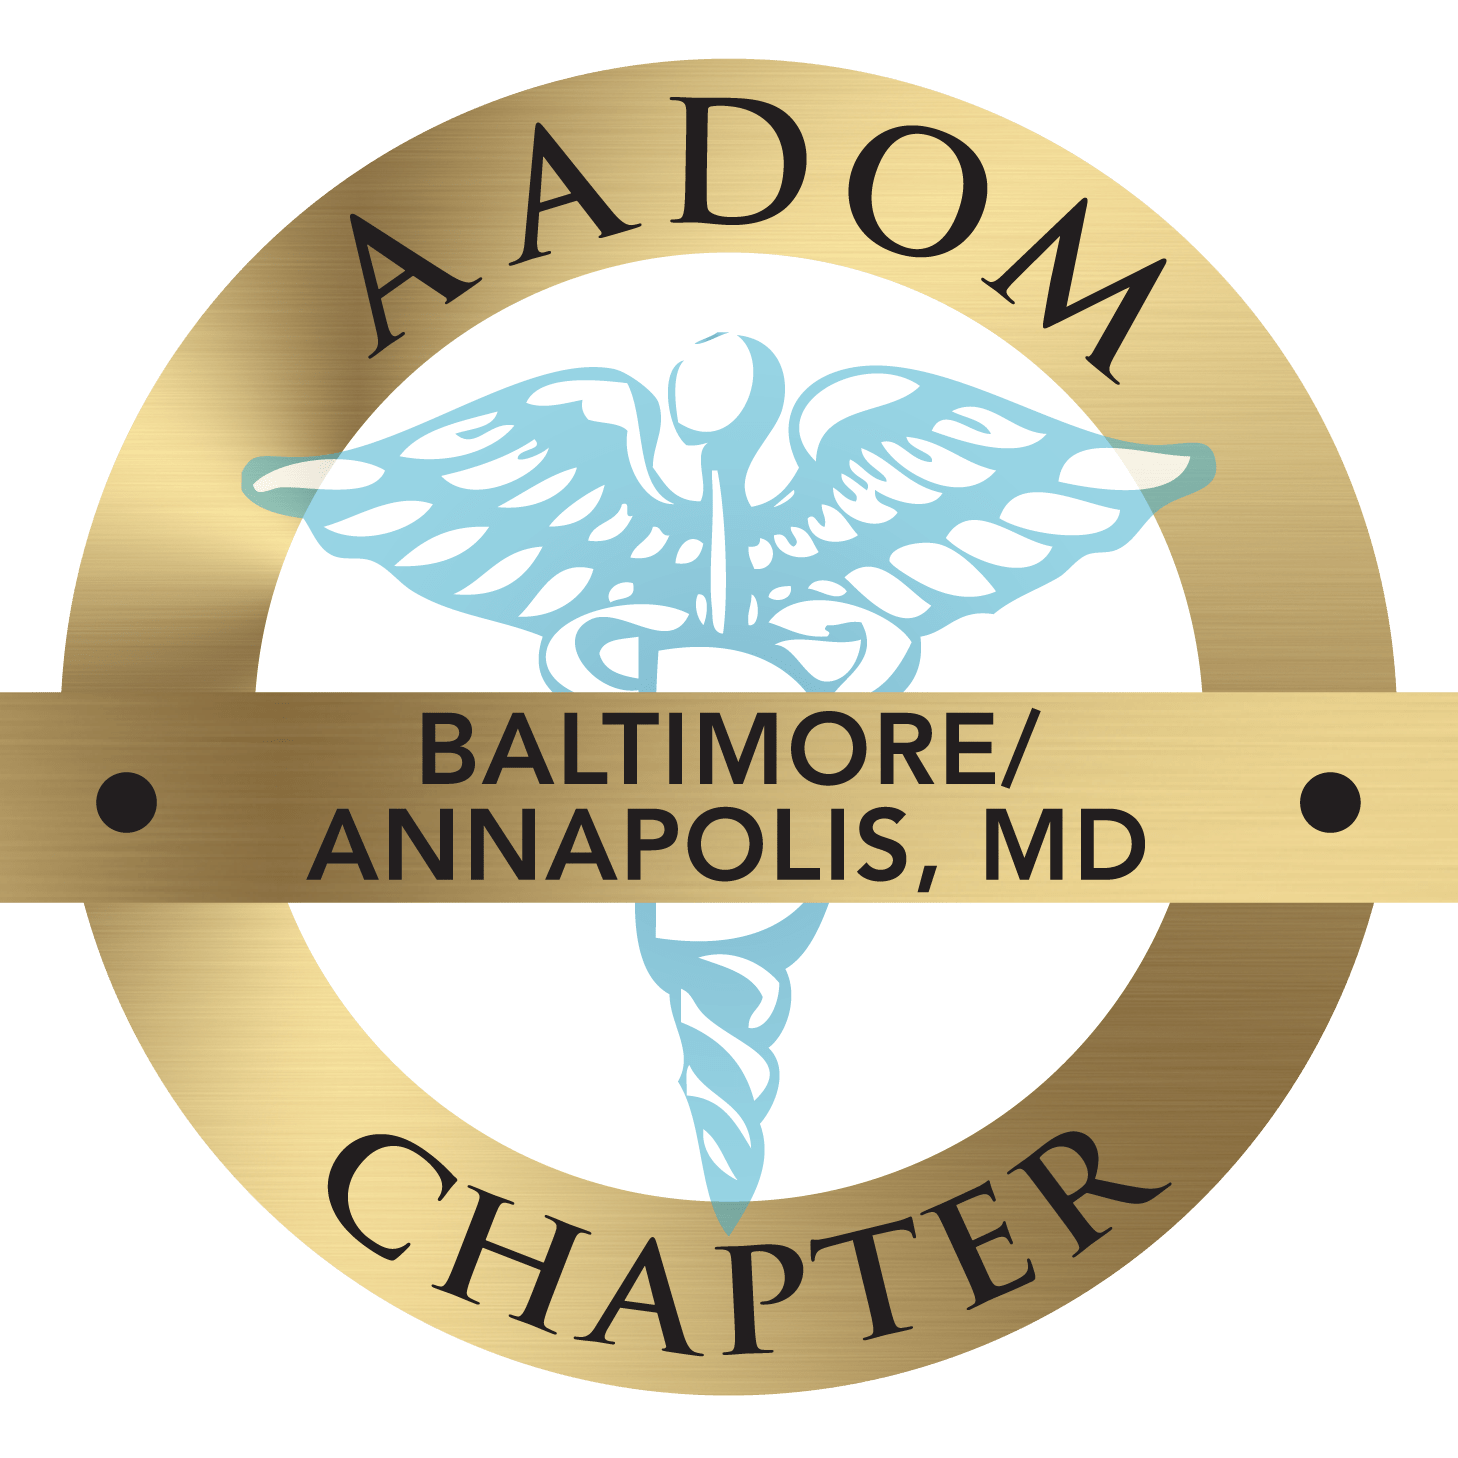 Baltimore Annapolis MD AADOM Chapter logo